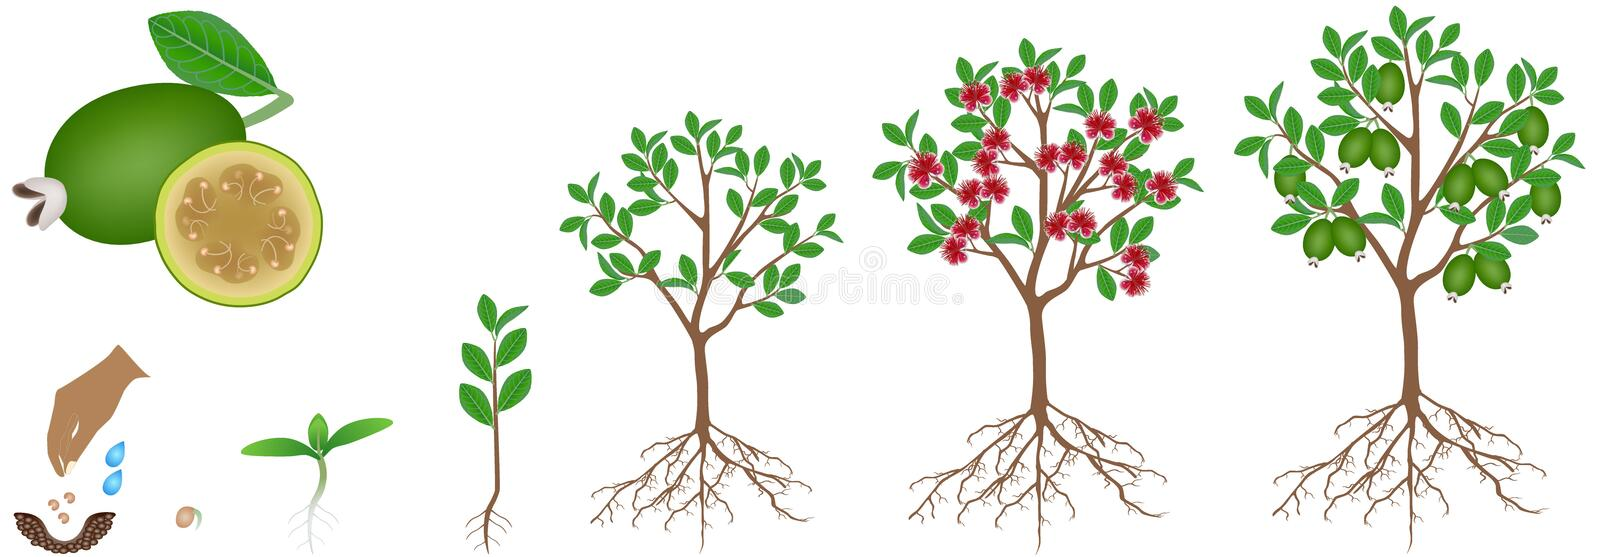 Cycle of growth of a feijoa plant on a white background. royalty free illustration